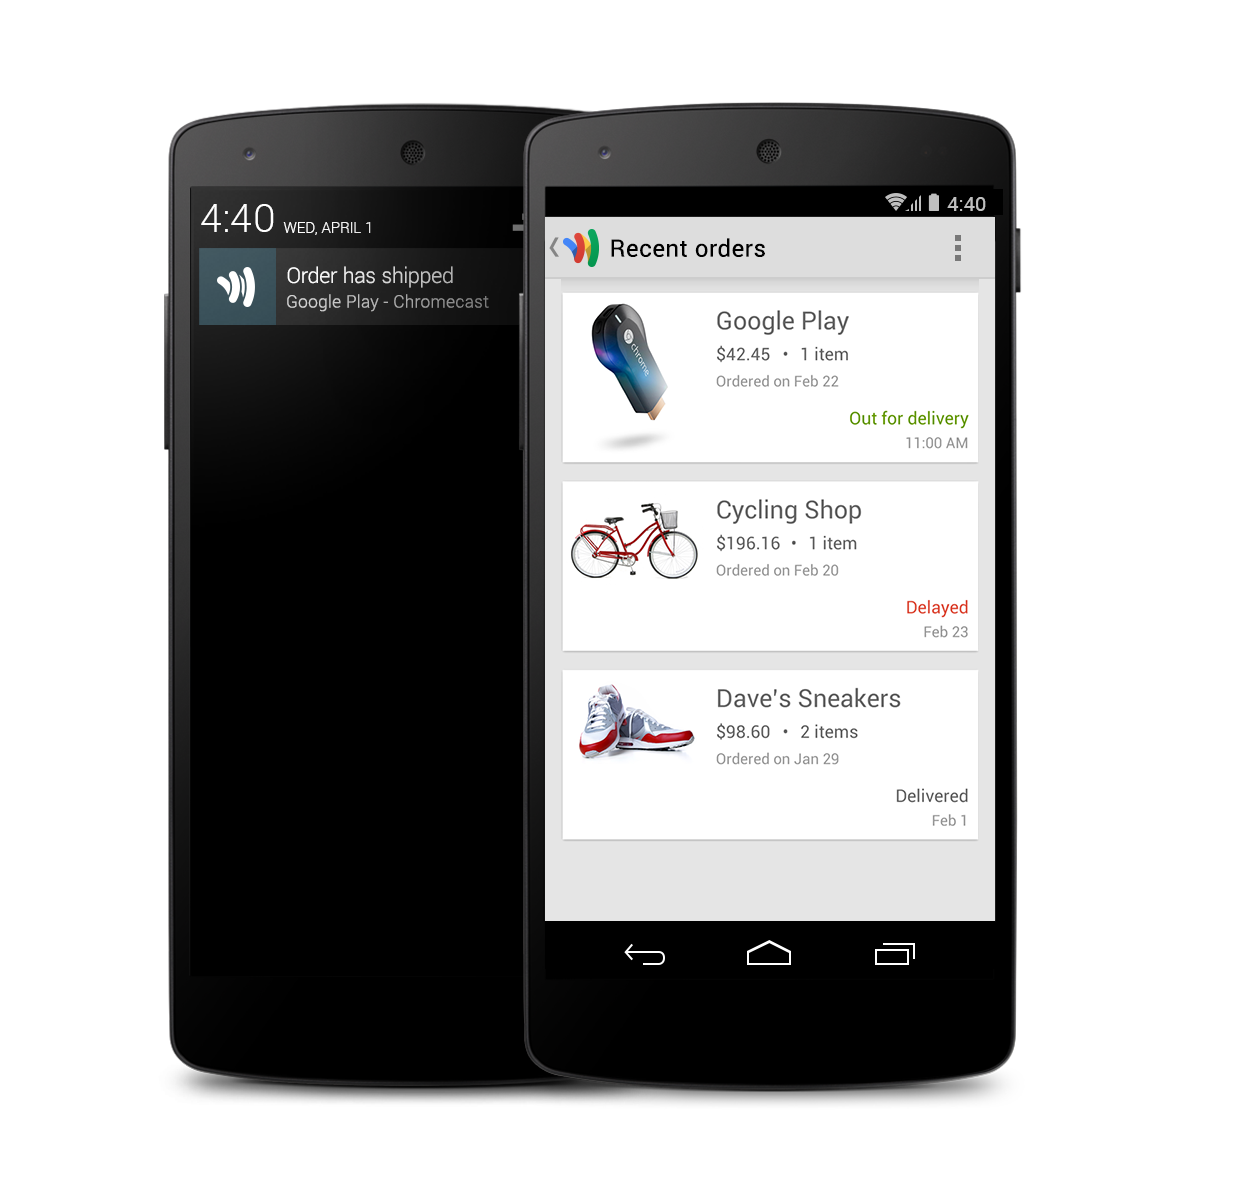 ordersblog Google Wallet for Android and iOS now lets you track your current and past online orders